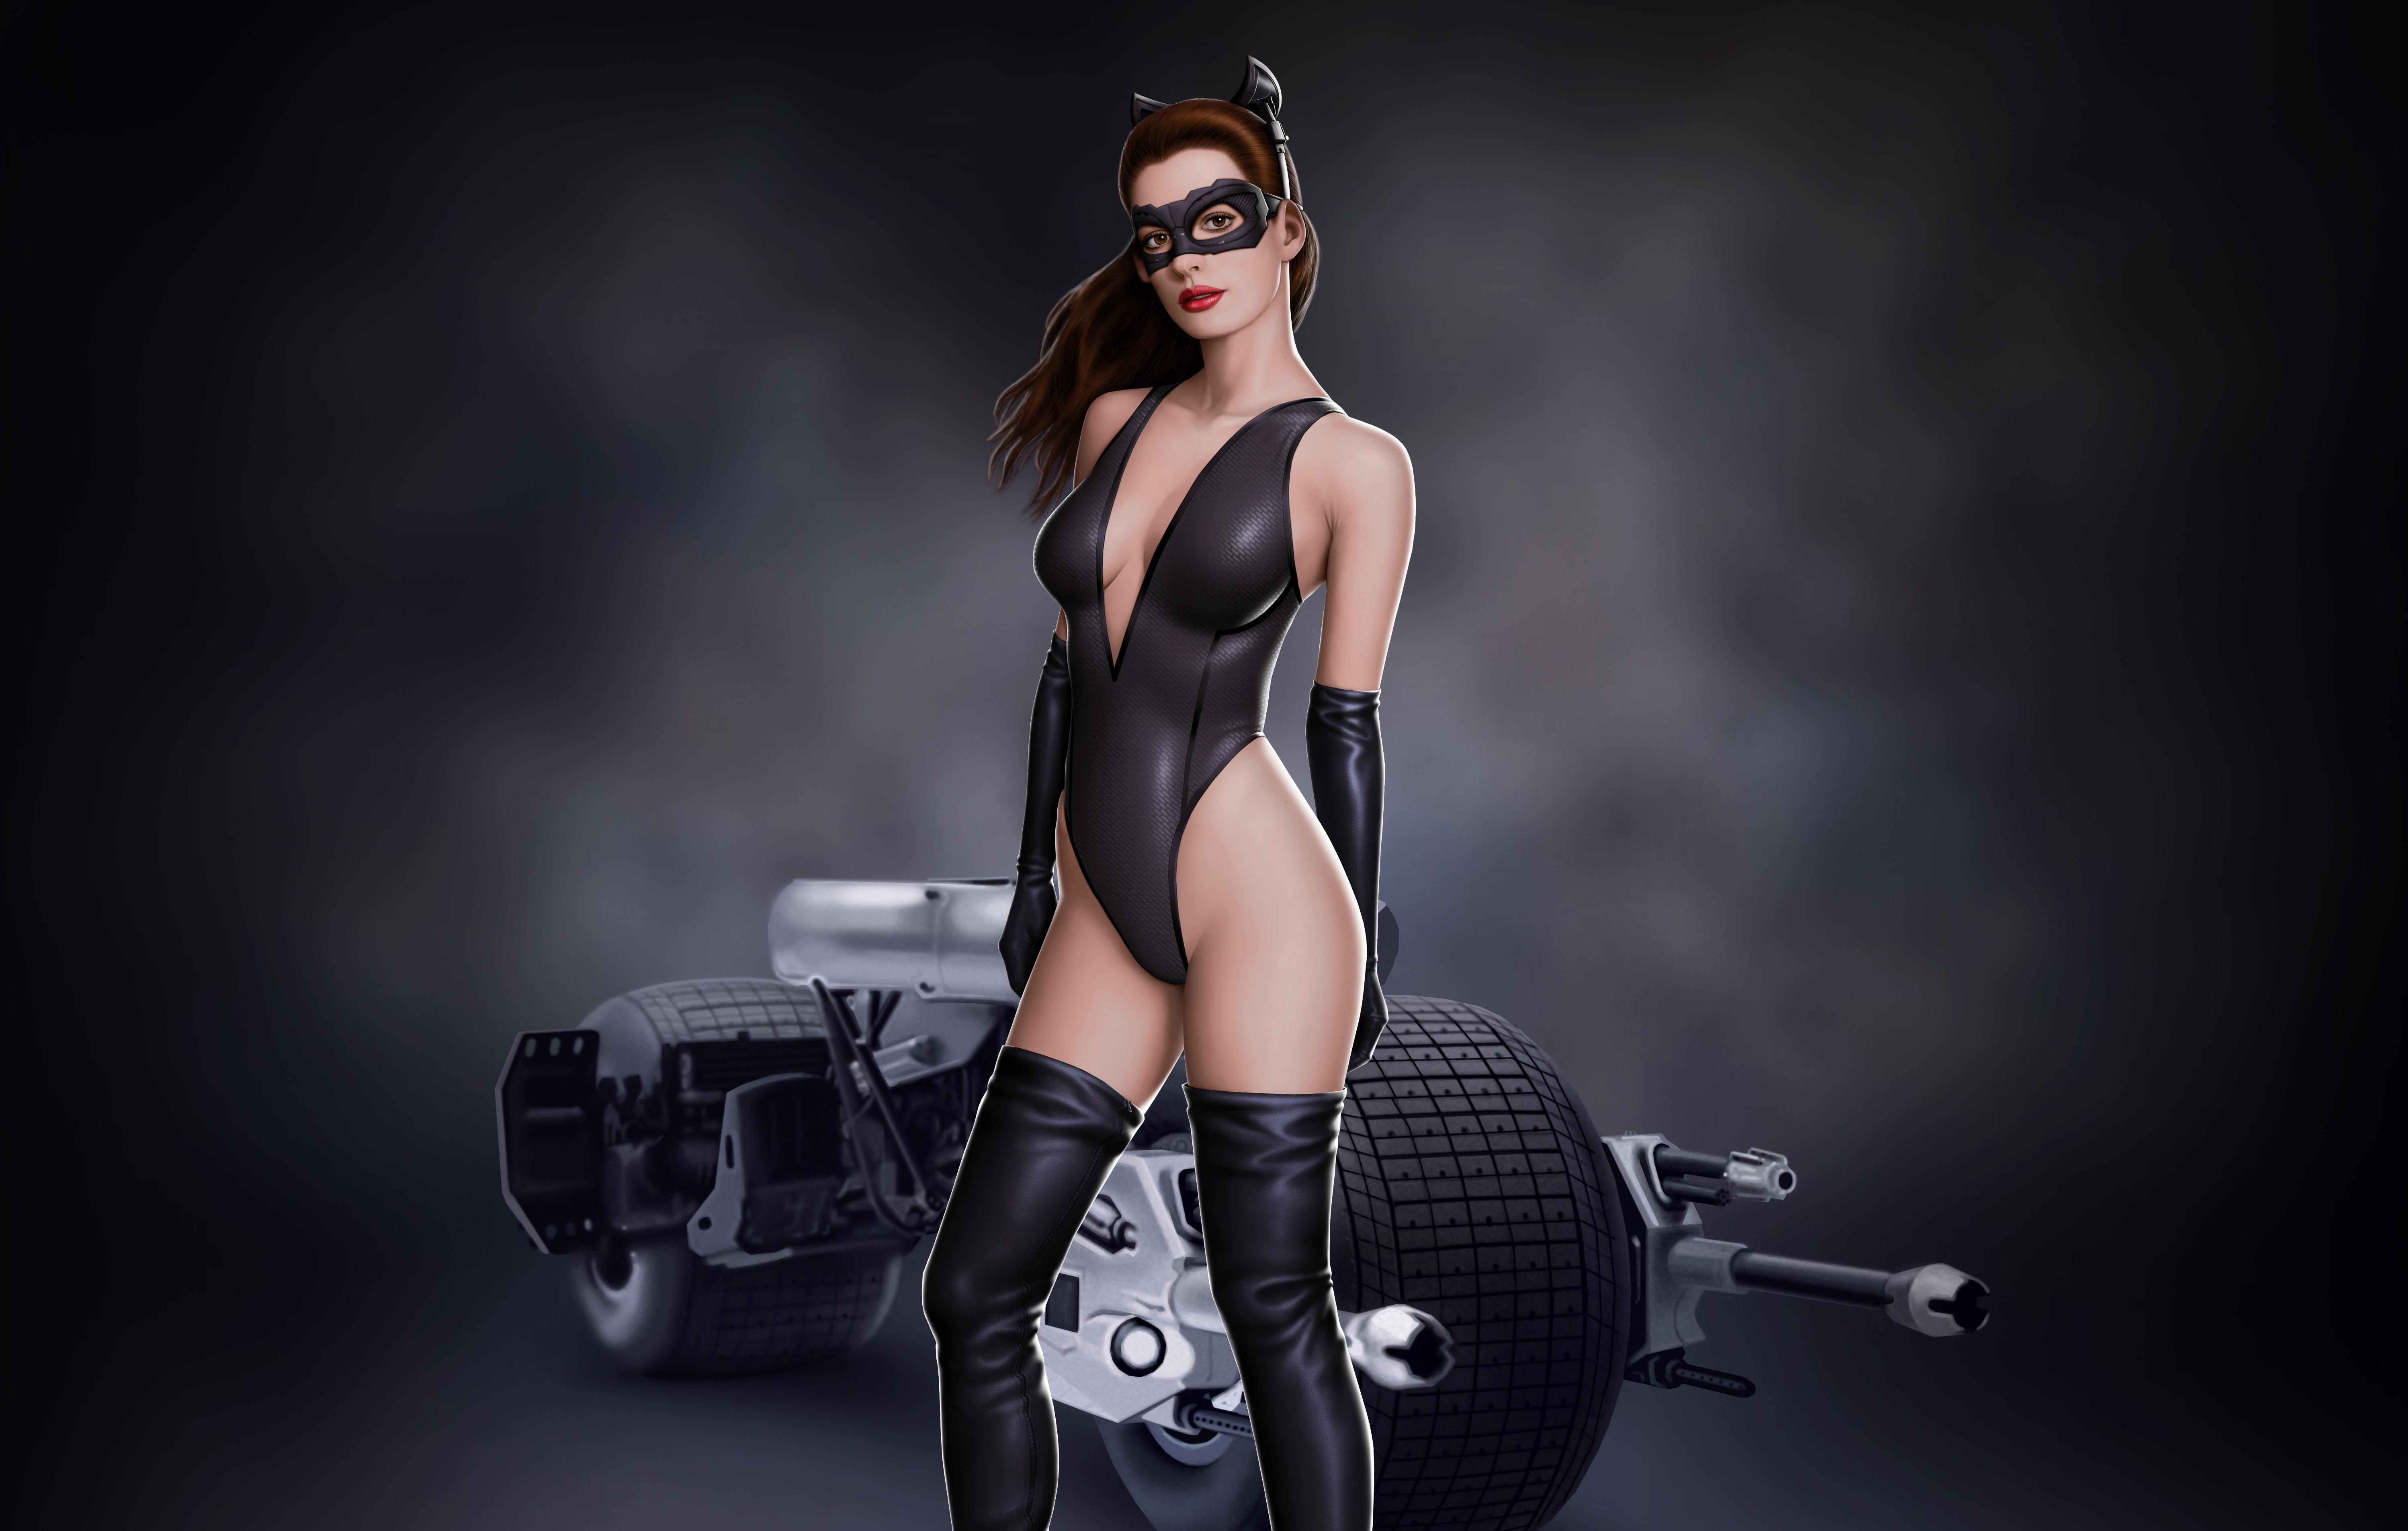 wallpaper art, anne, anne hathaway, catwoman, bike, batman, movie